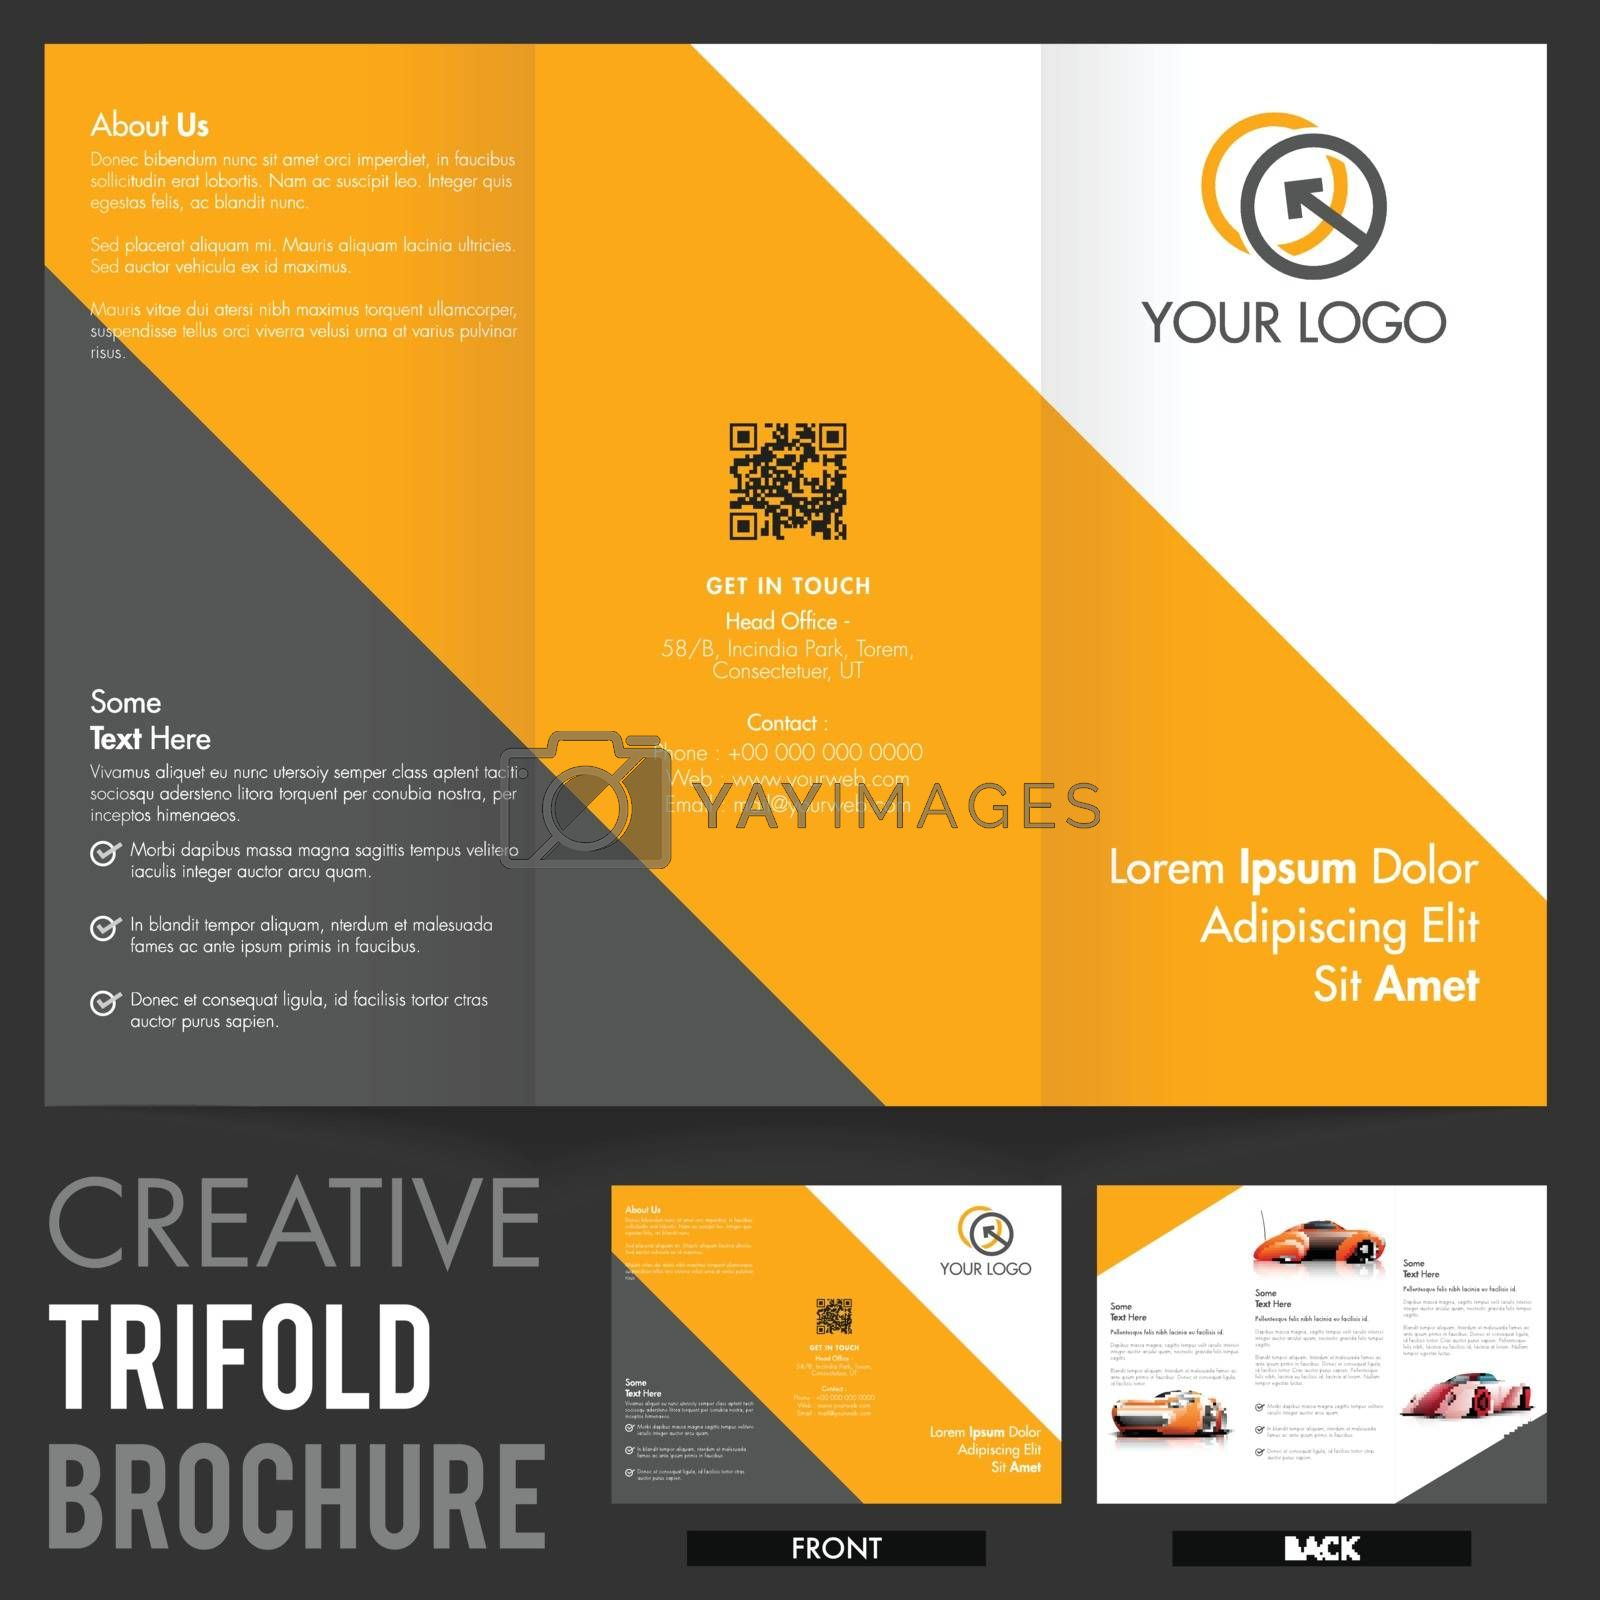 Creative Tri-Fold Brochure, Template design with front and back page view.